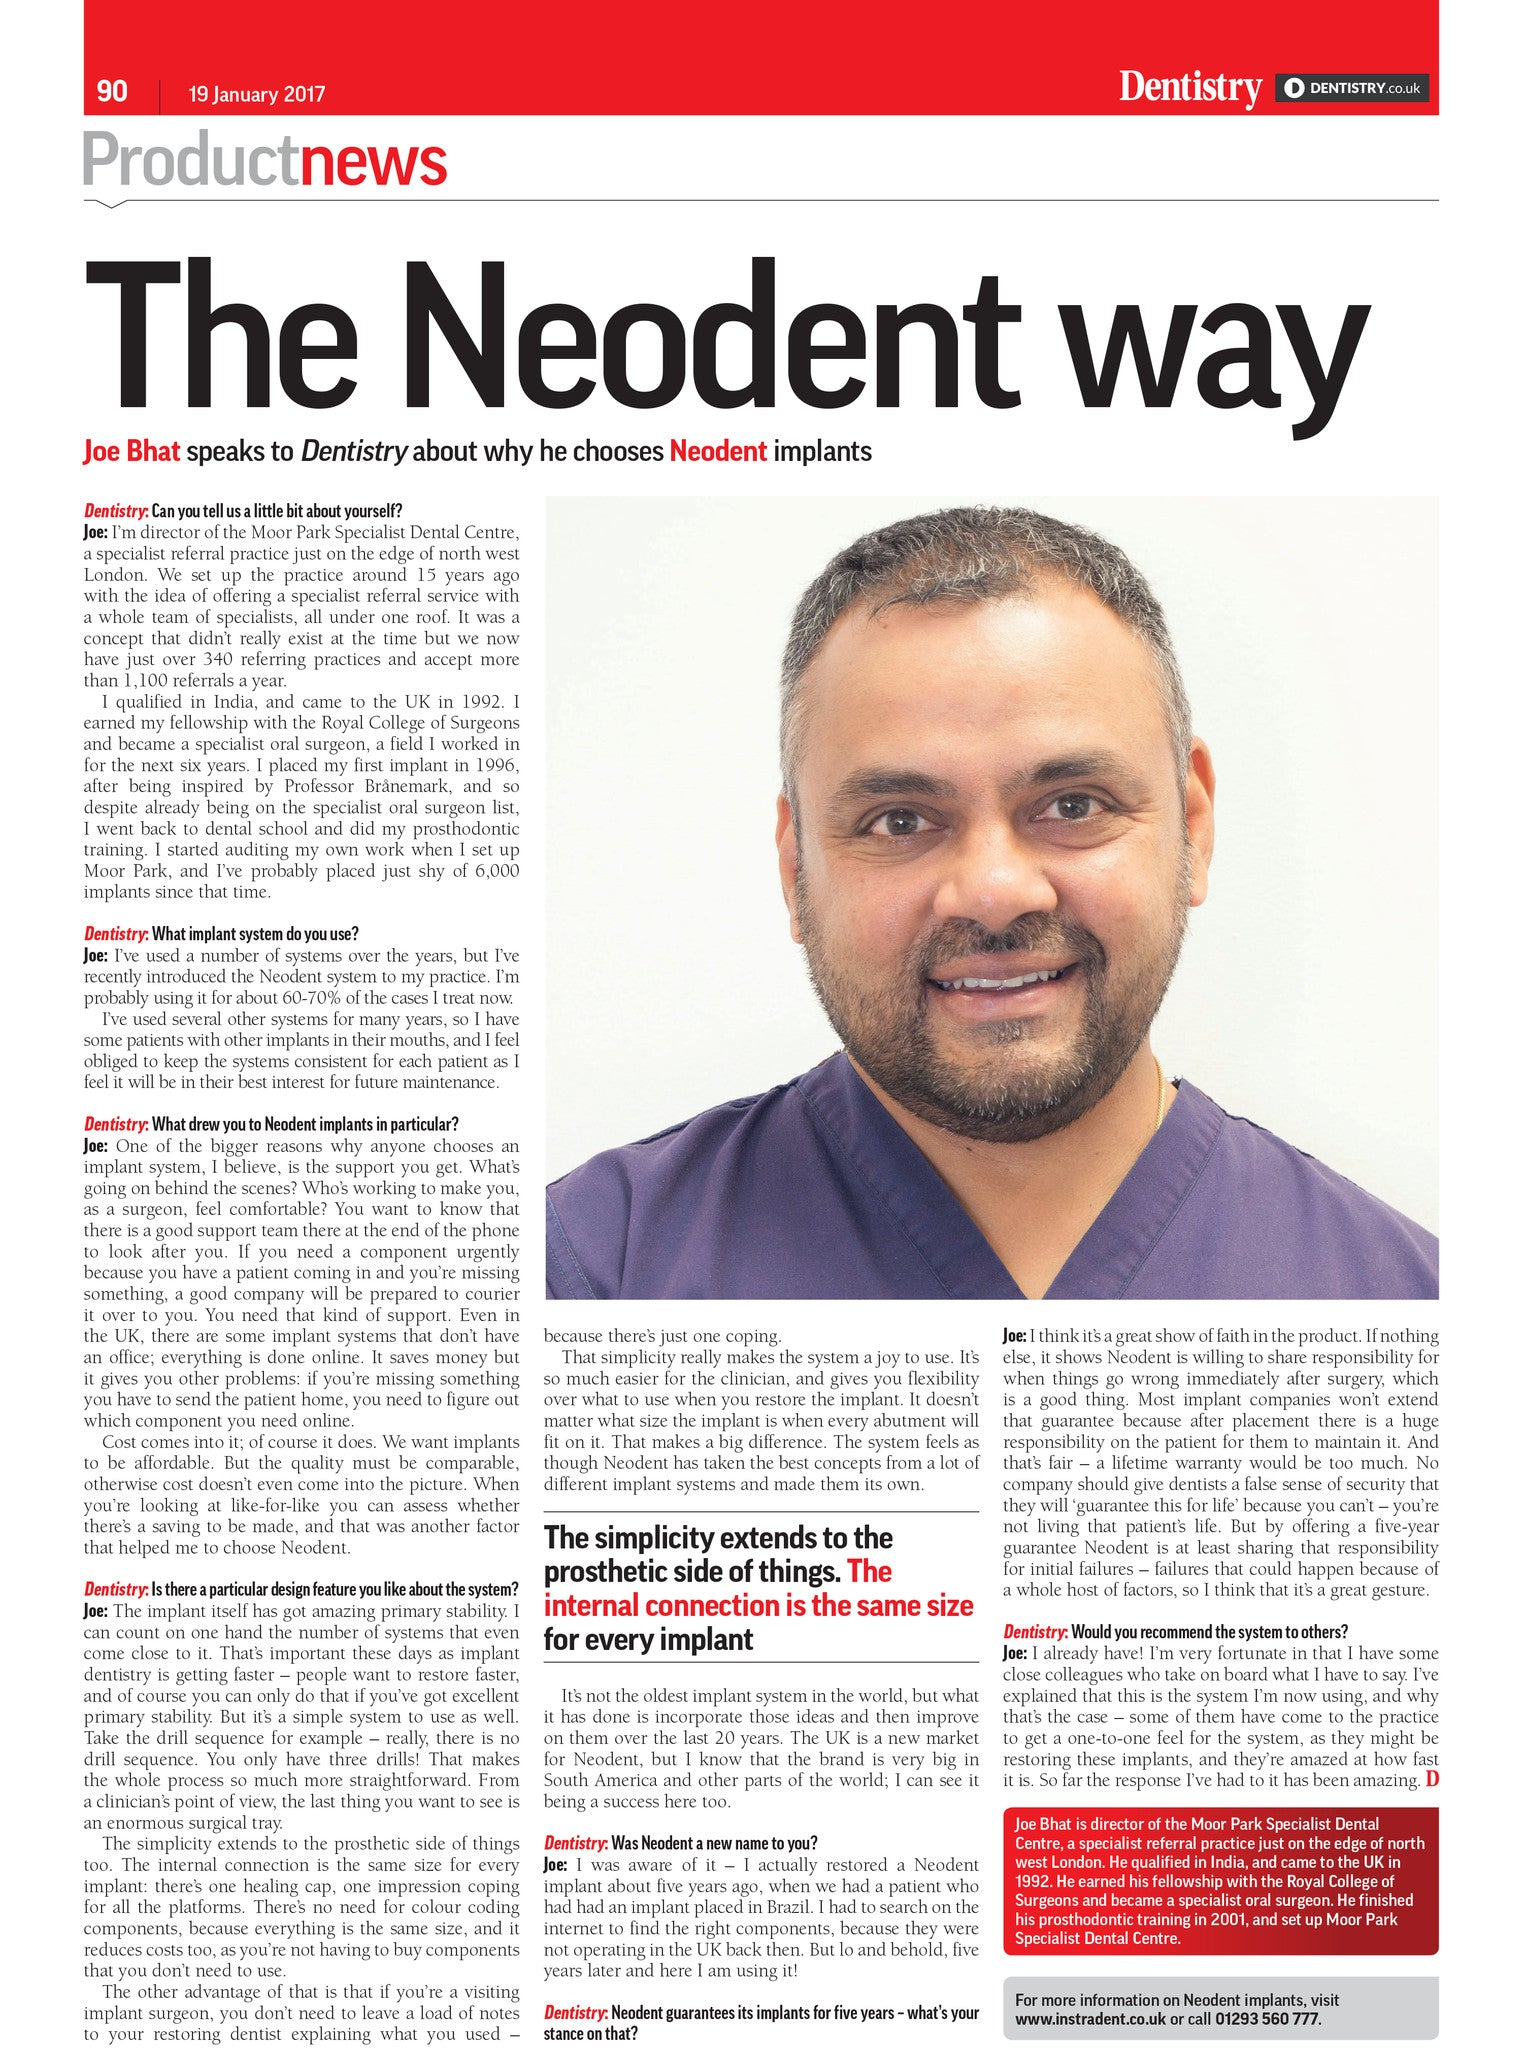 Joe Bhatt Interview on Neodent - January 2017